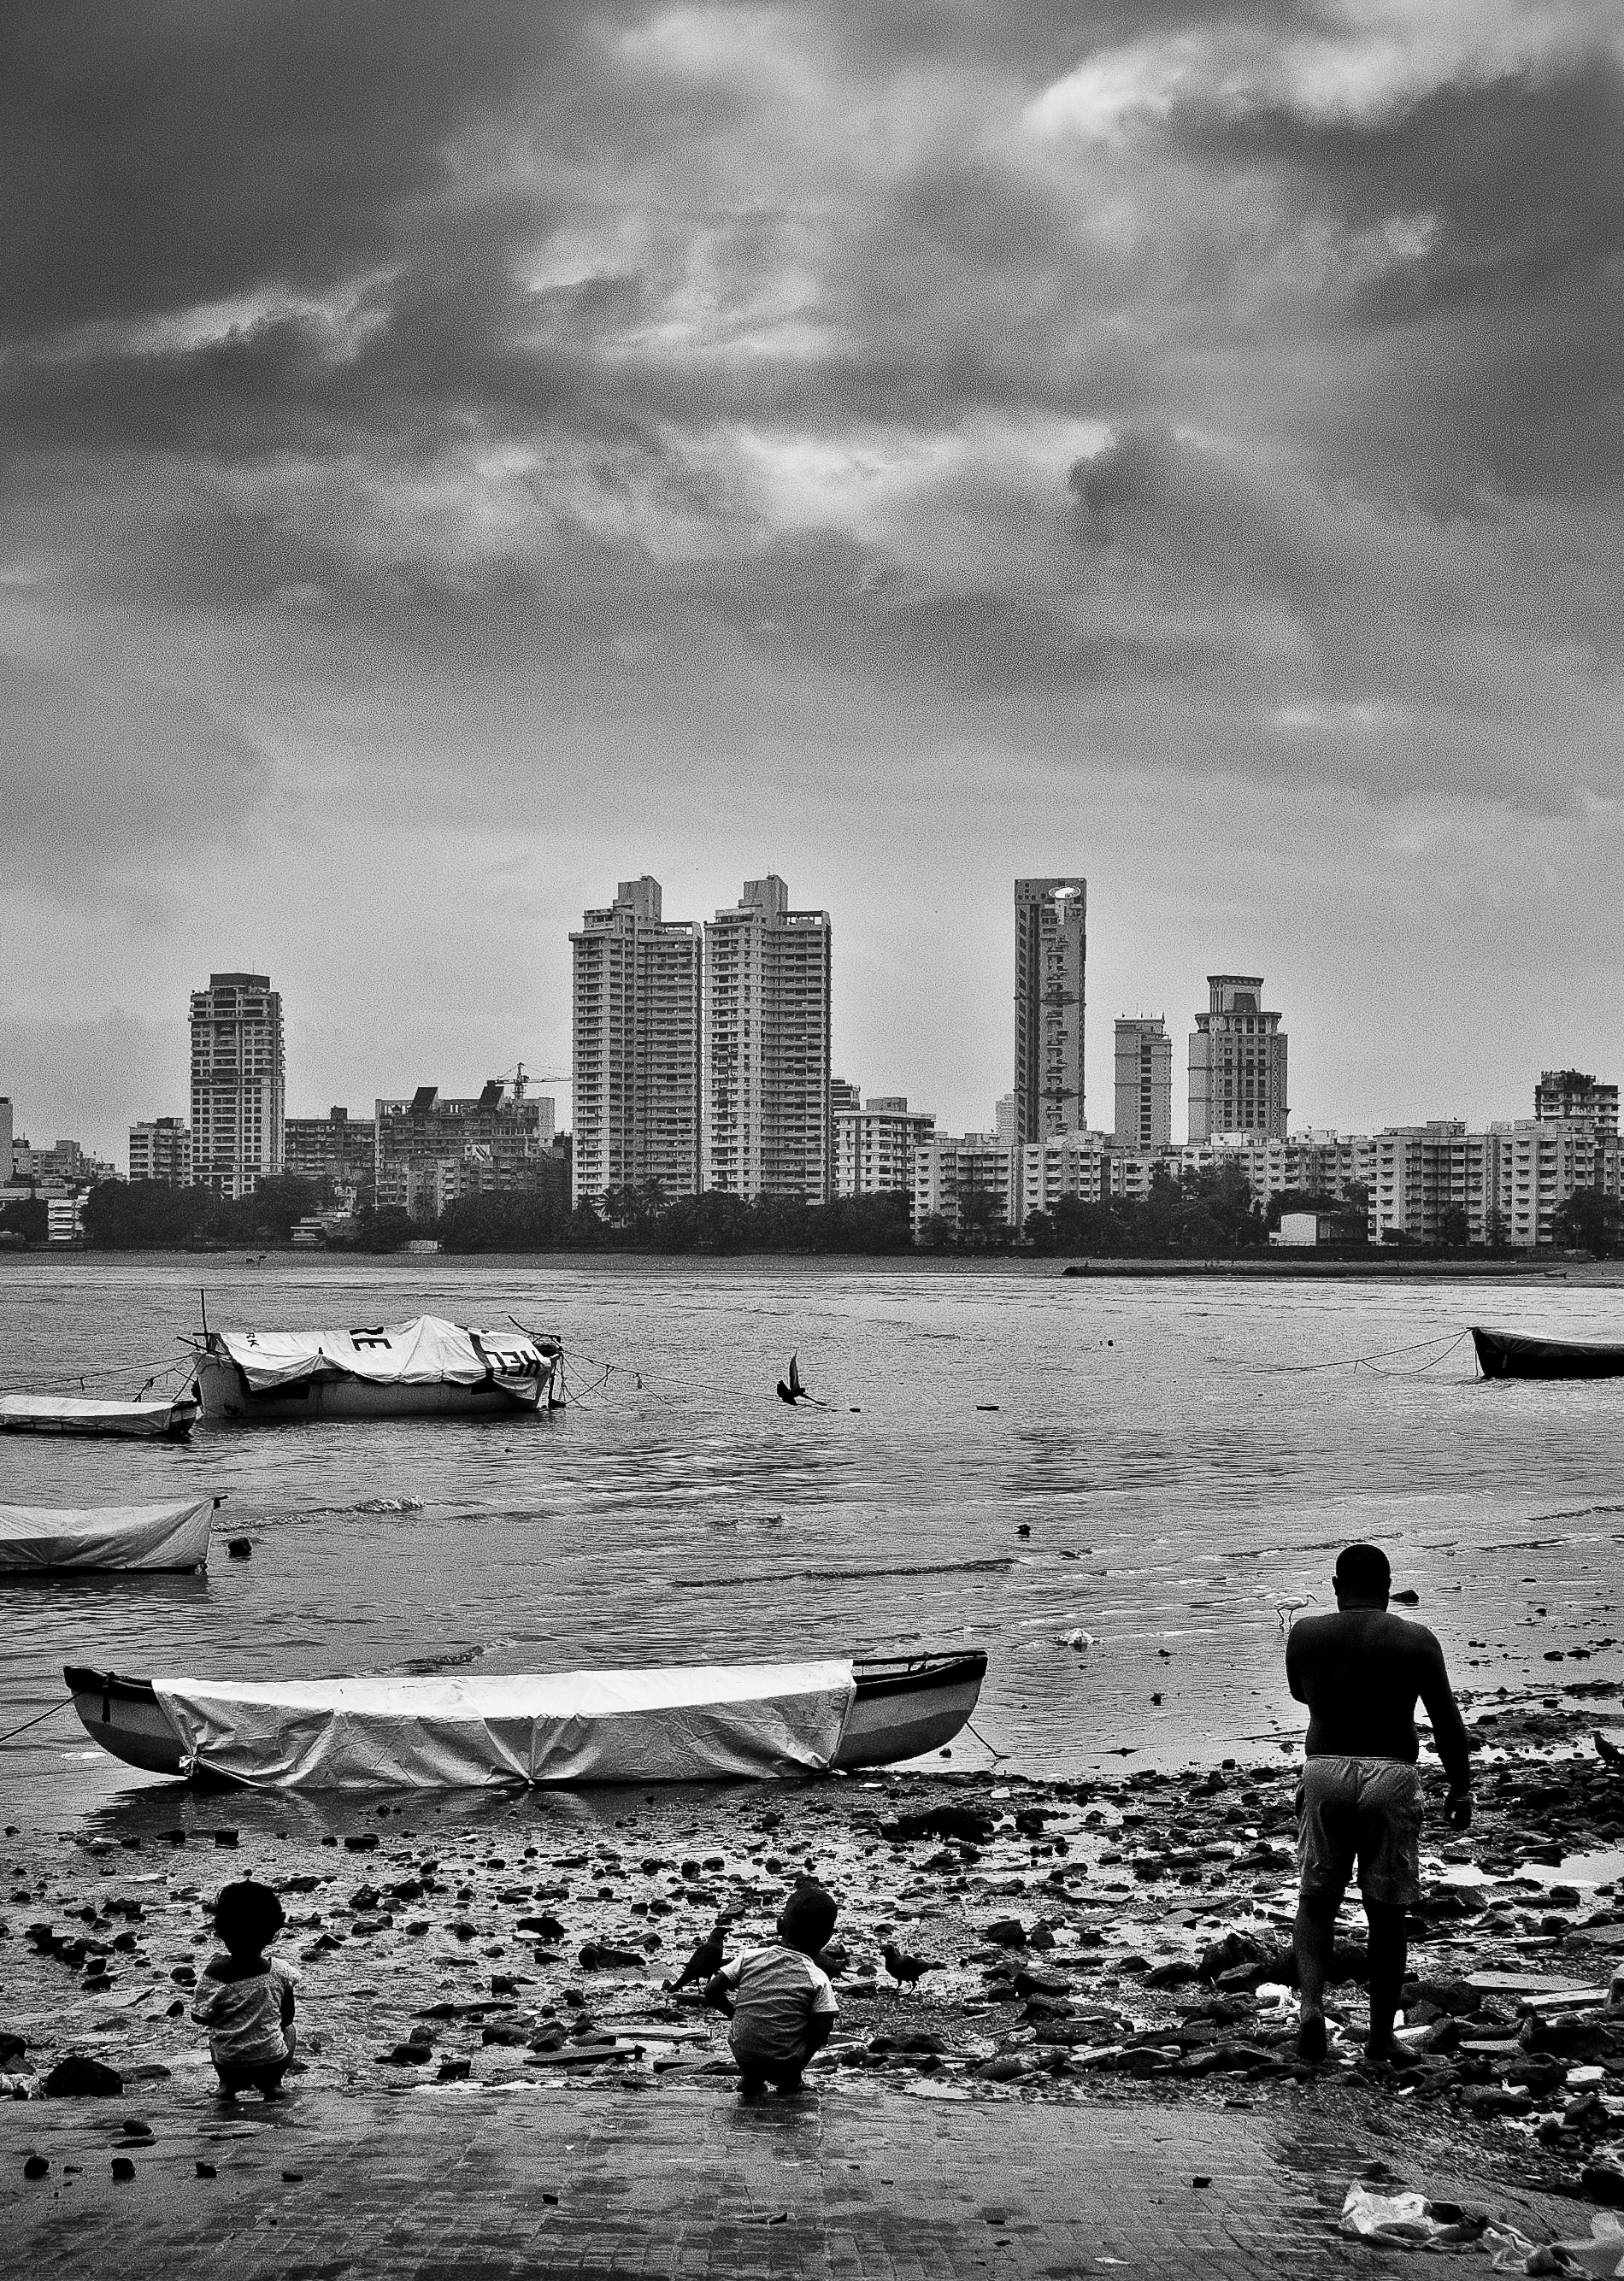 Mayank Pandey, amateur photographer from Mumbai, interview at photograteur.com